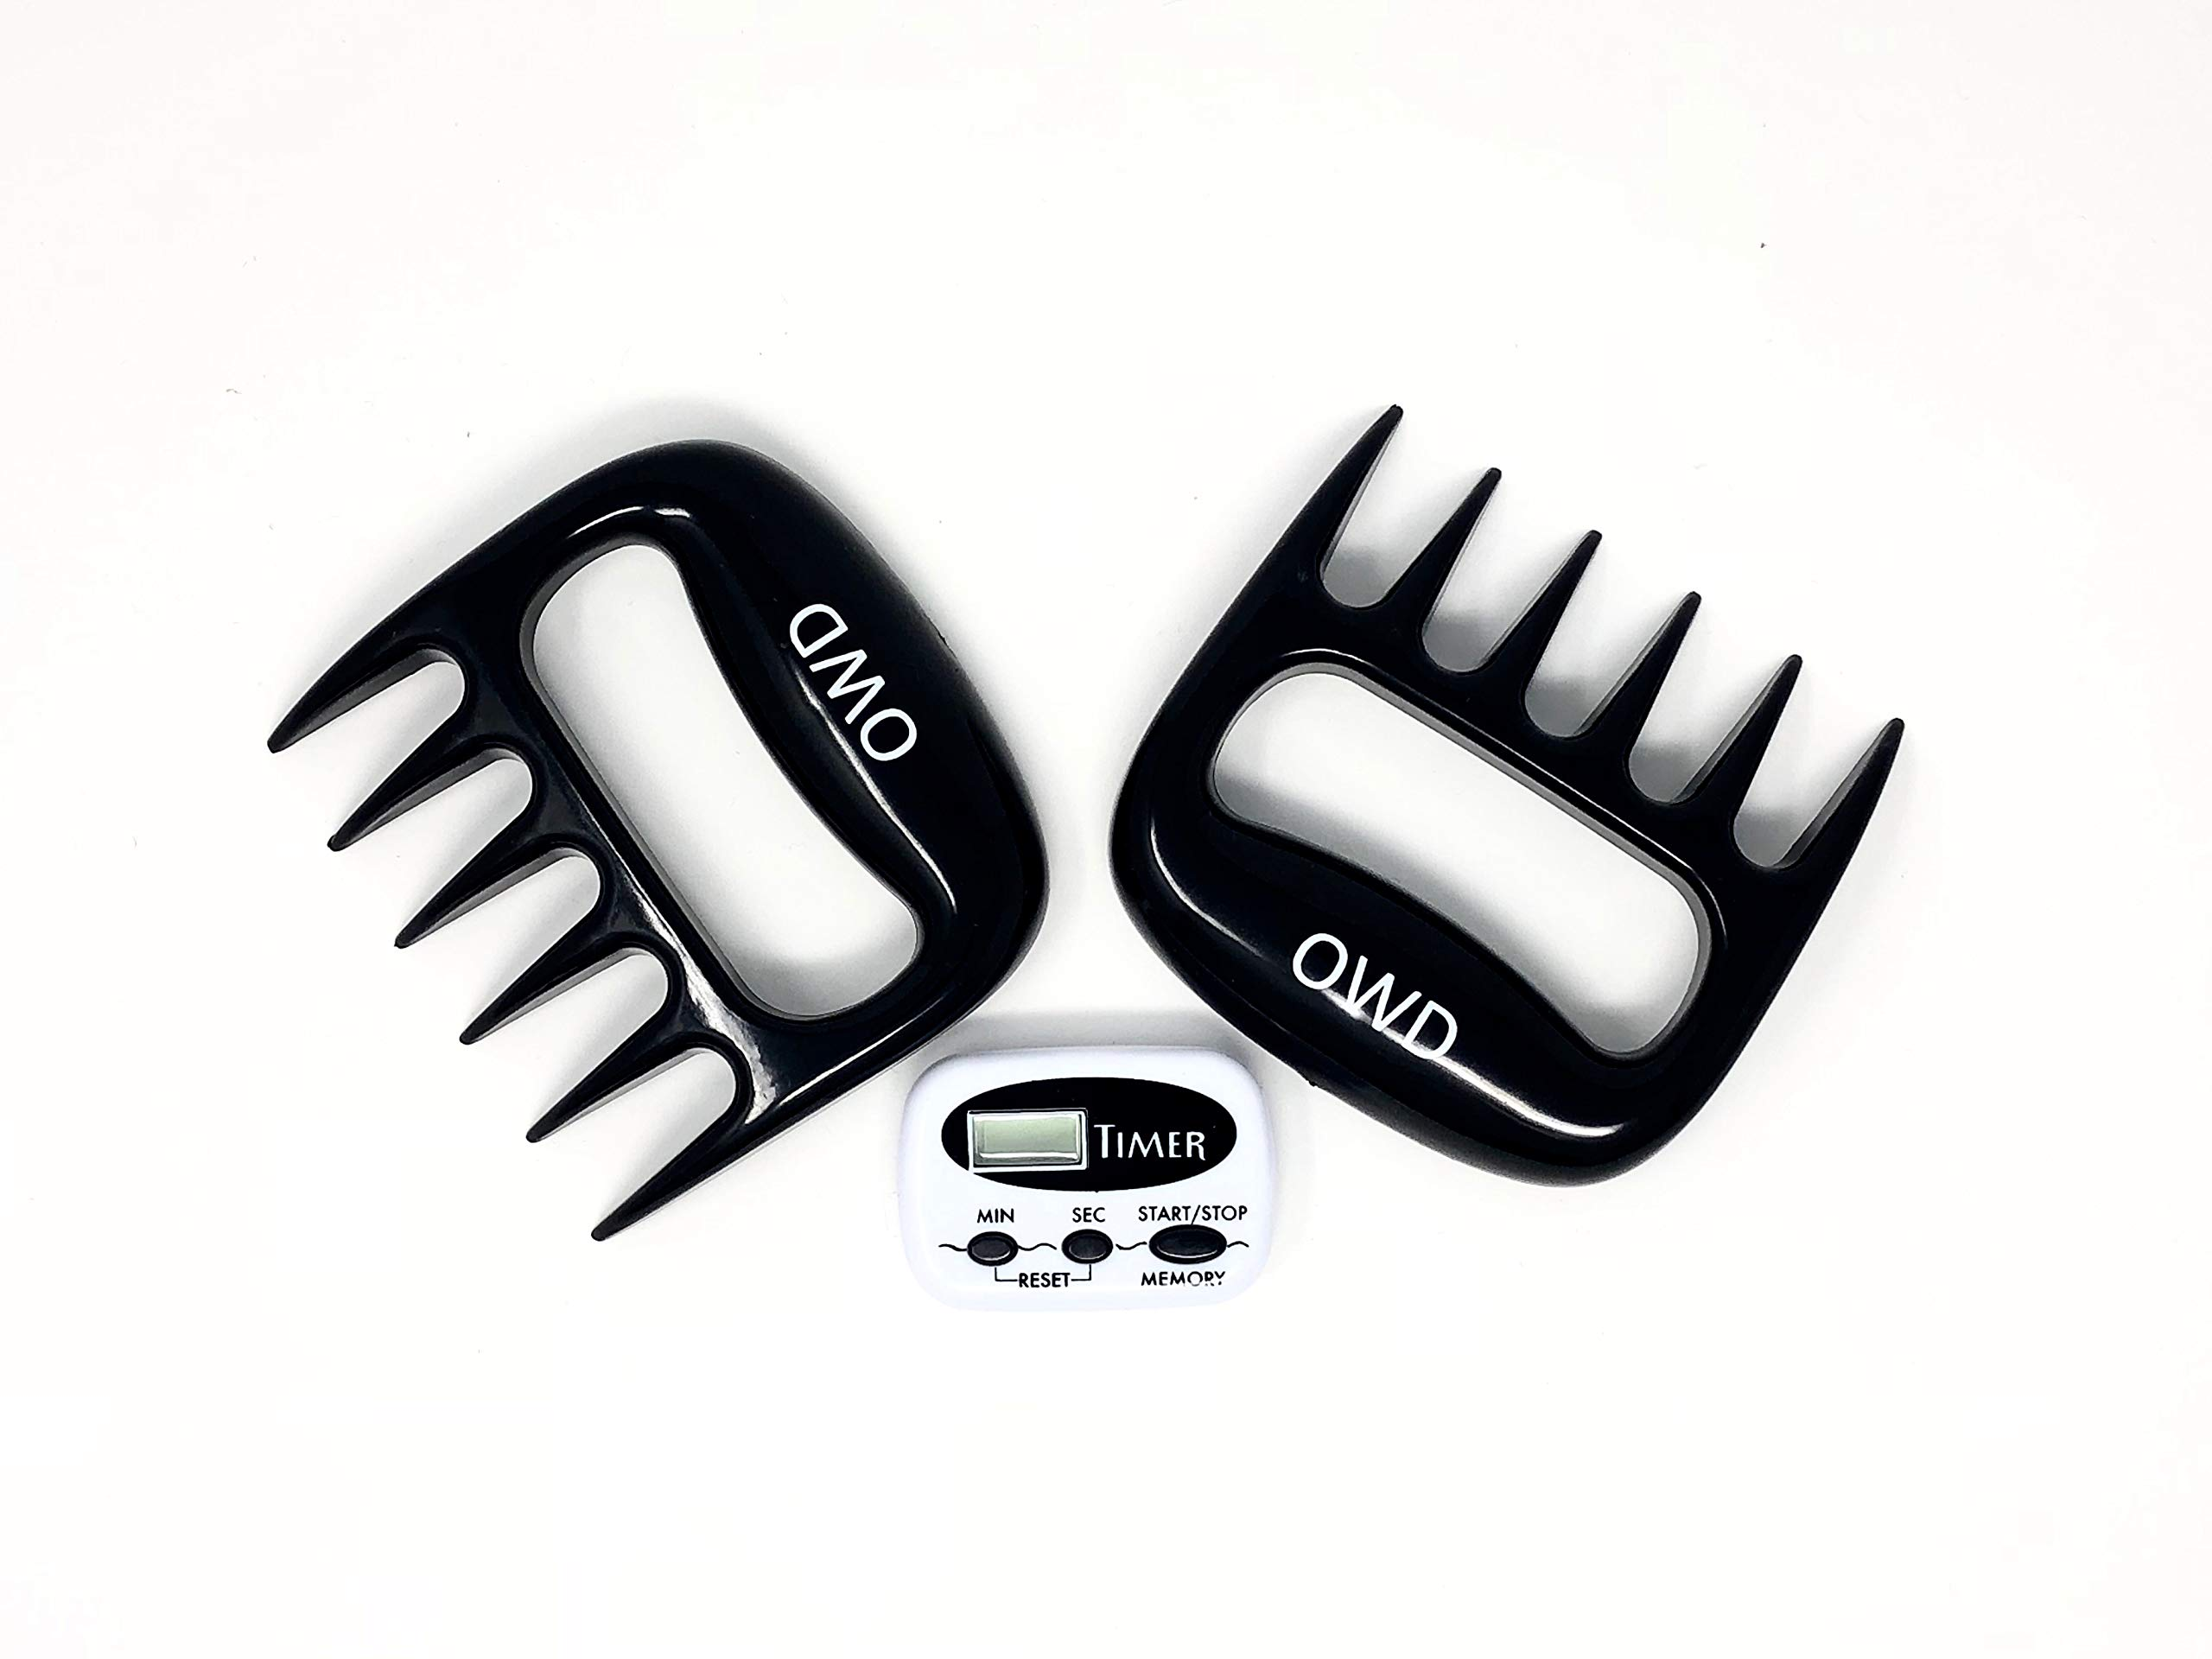 Owd Claws Premium Meat Shredder Claws BBQ, Smoker, Kitchen Use – Meat Handlers Pork, Poultry, Beef & Hams – Quality Nylon Coating Is Heat Resistant (Meat Claws + Timer)